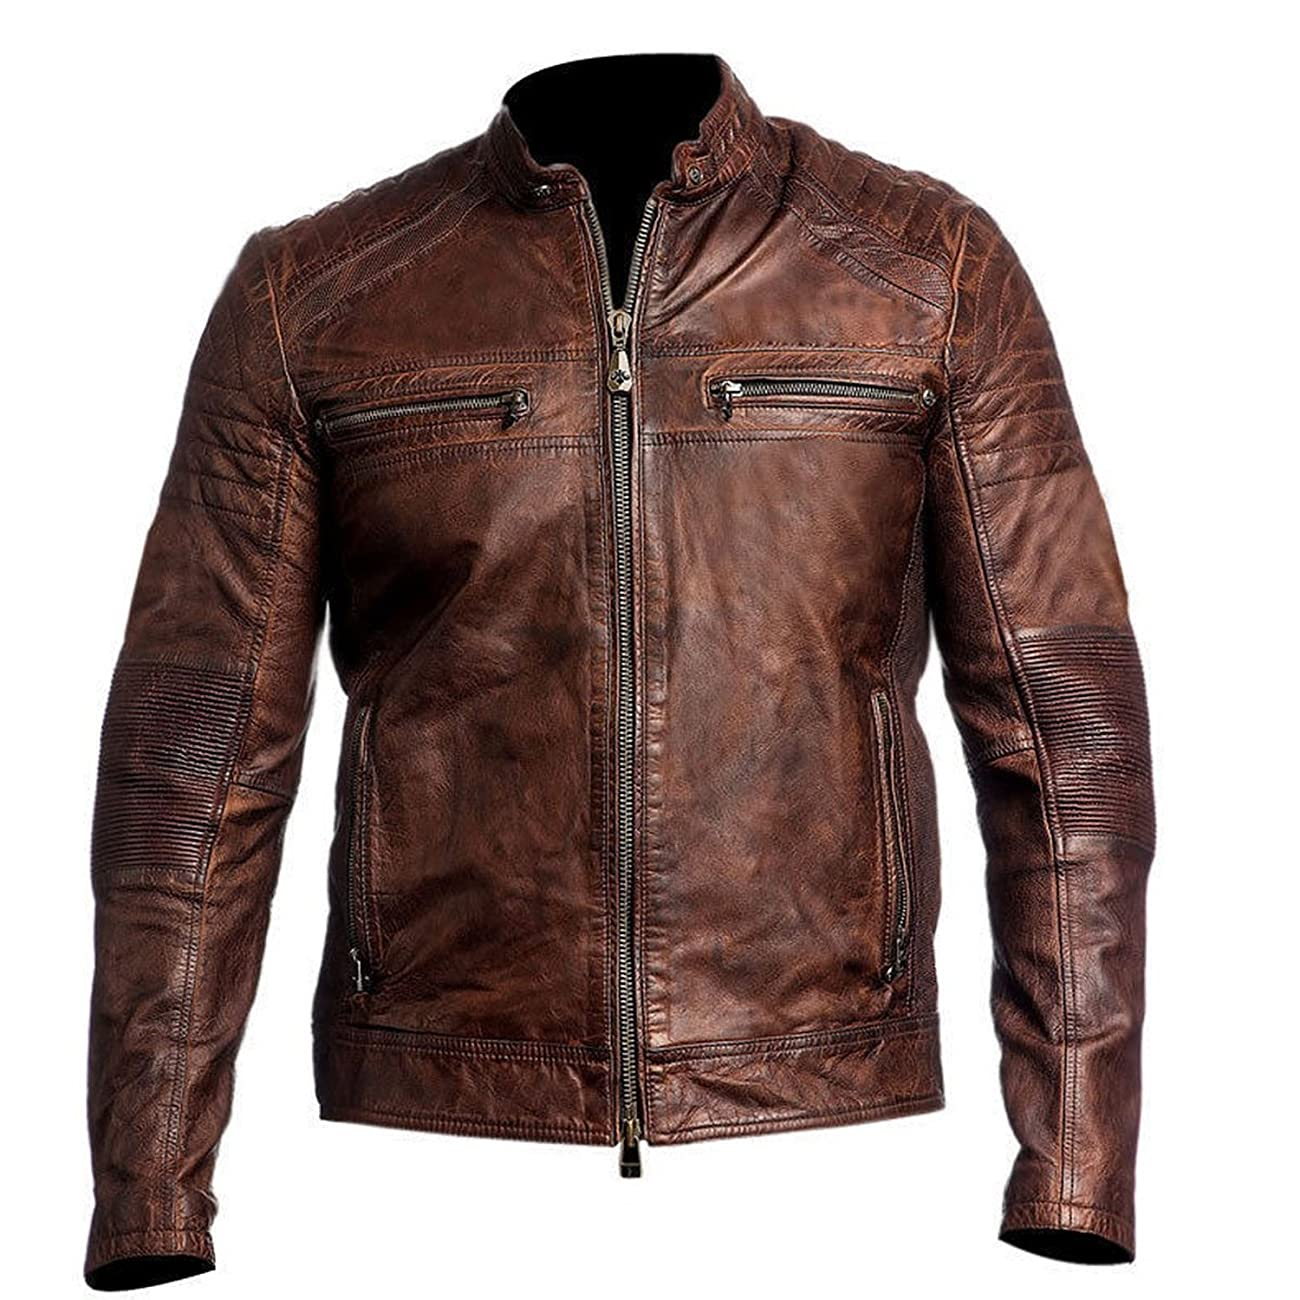 Men's Biker Vintage Motorcycle Distressed Brown Cafe Racer Leather Jacket 0